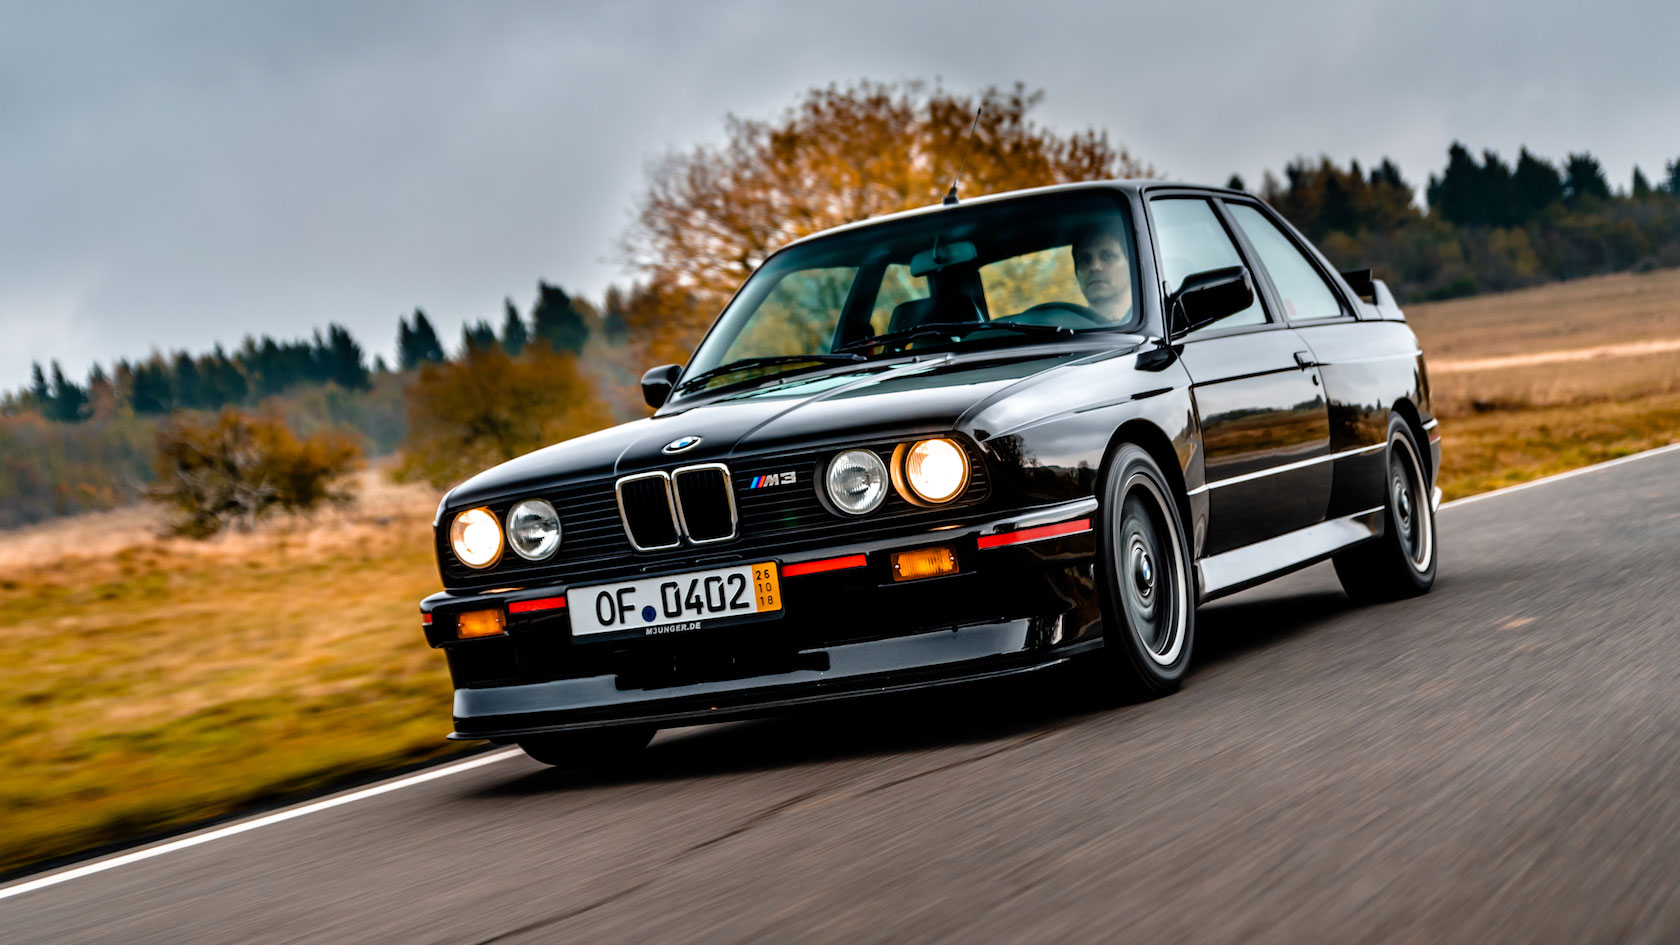 E30 BMW M3 Sport Evolution with paint finish Gloss Black on a counry road in autumn